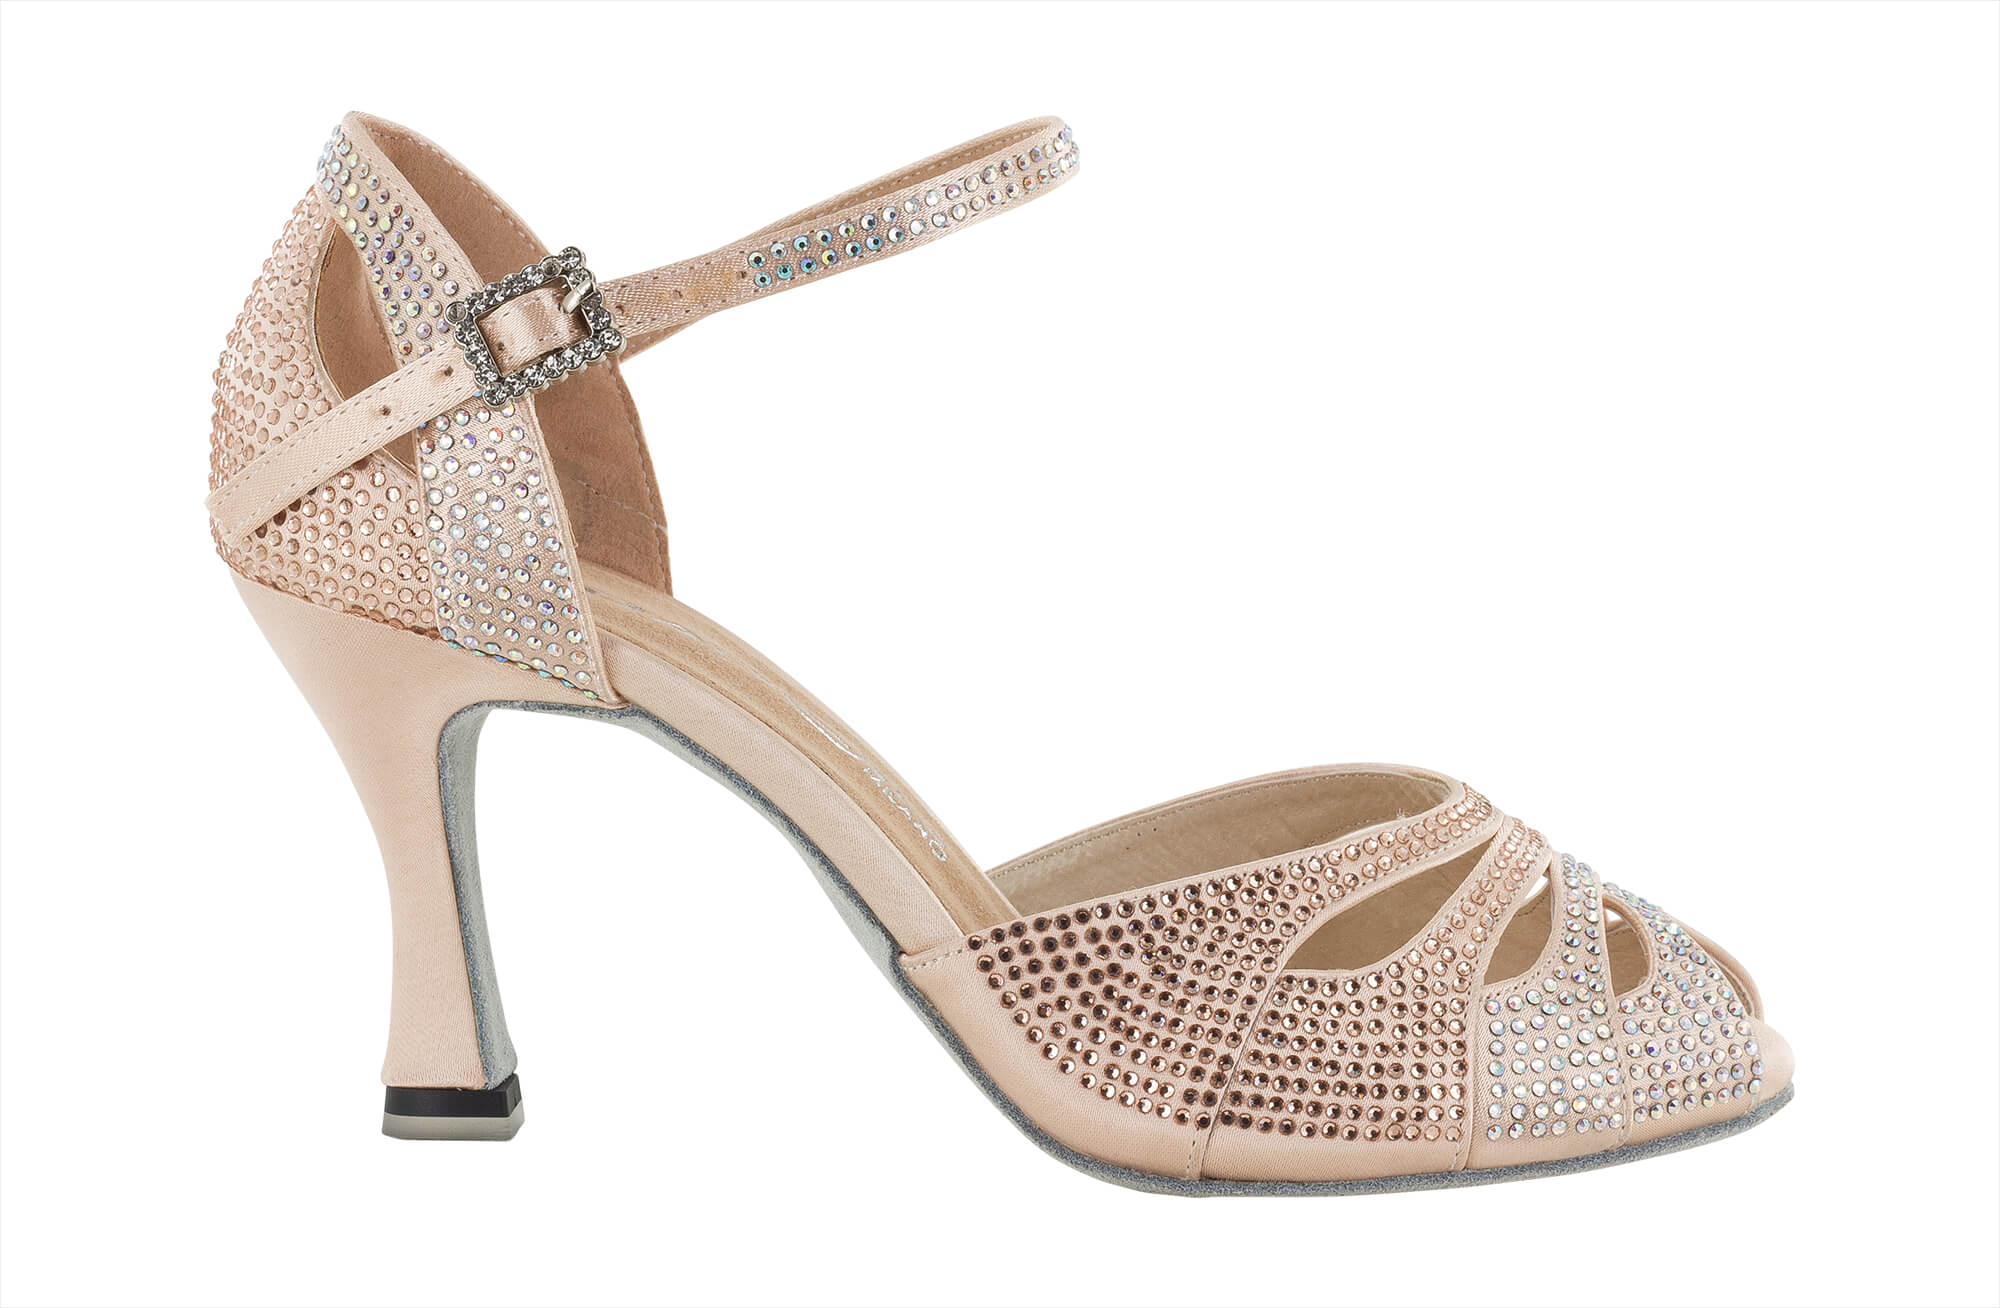 on sale 293fb 9806e Dancing shoes open pointy in face powder pink satin covered with crystal  strass heel 7,5 cm - Dancin scarpe da ballo